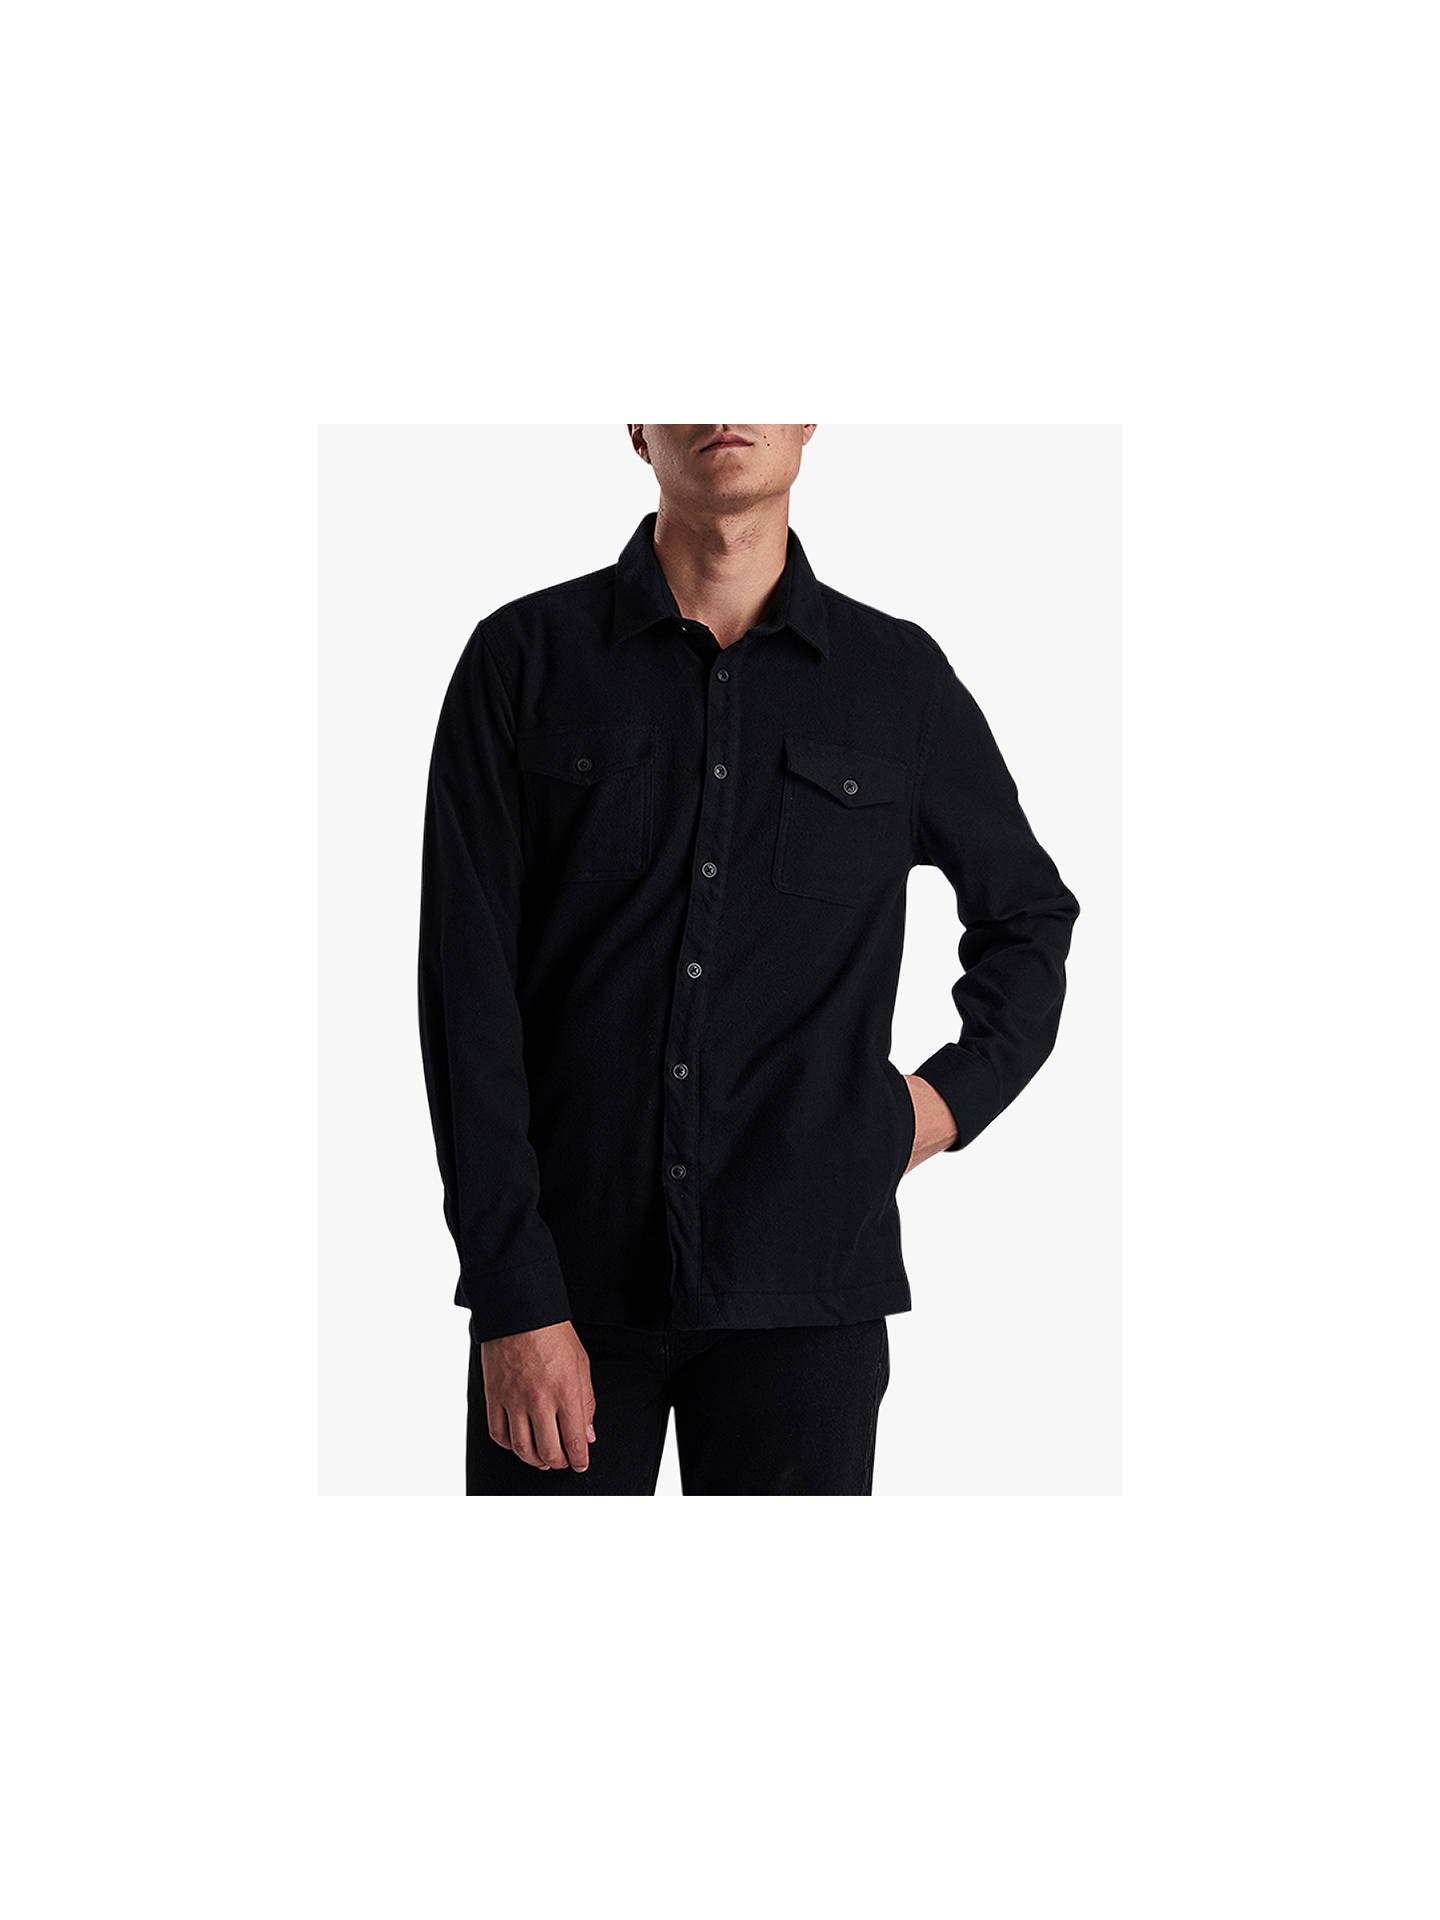 Barbour International Skipton Long Sleeve Shirt, Black at